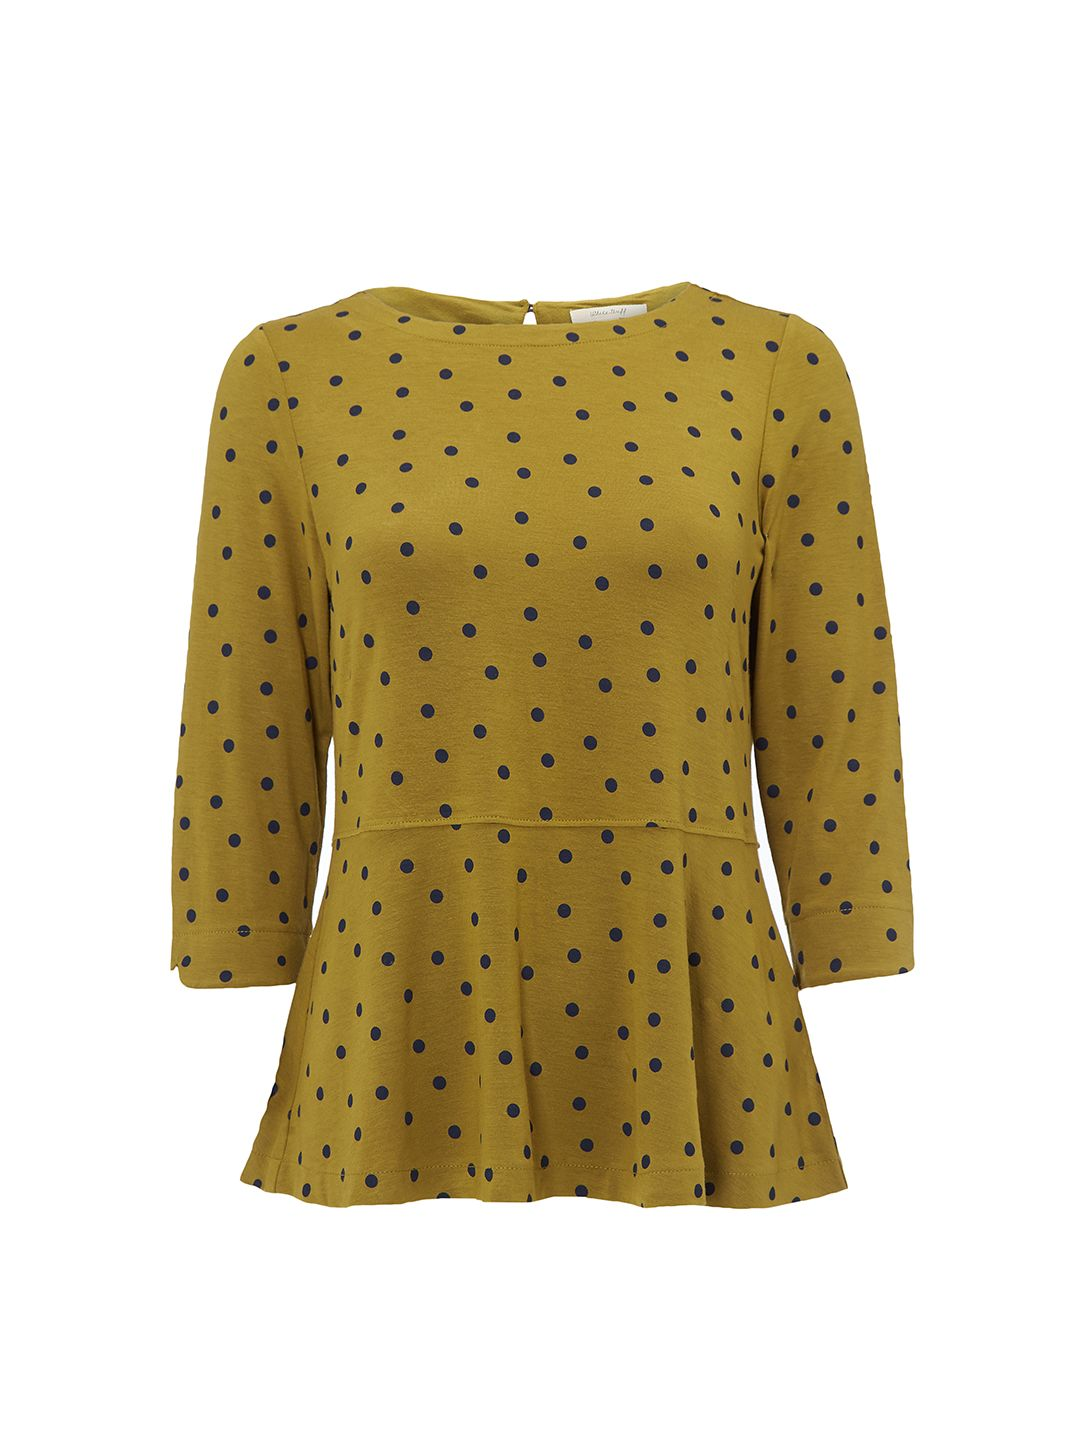 White Stuff Spotty Polly Jersey Tee, Green